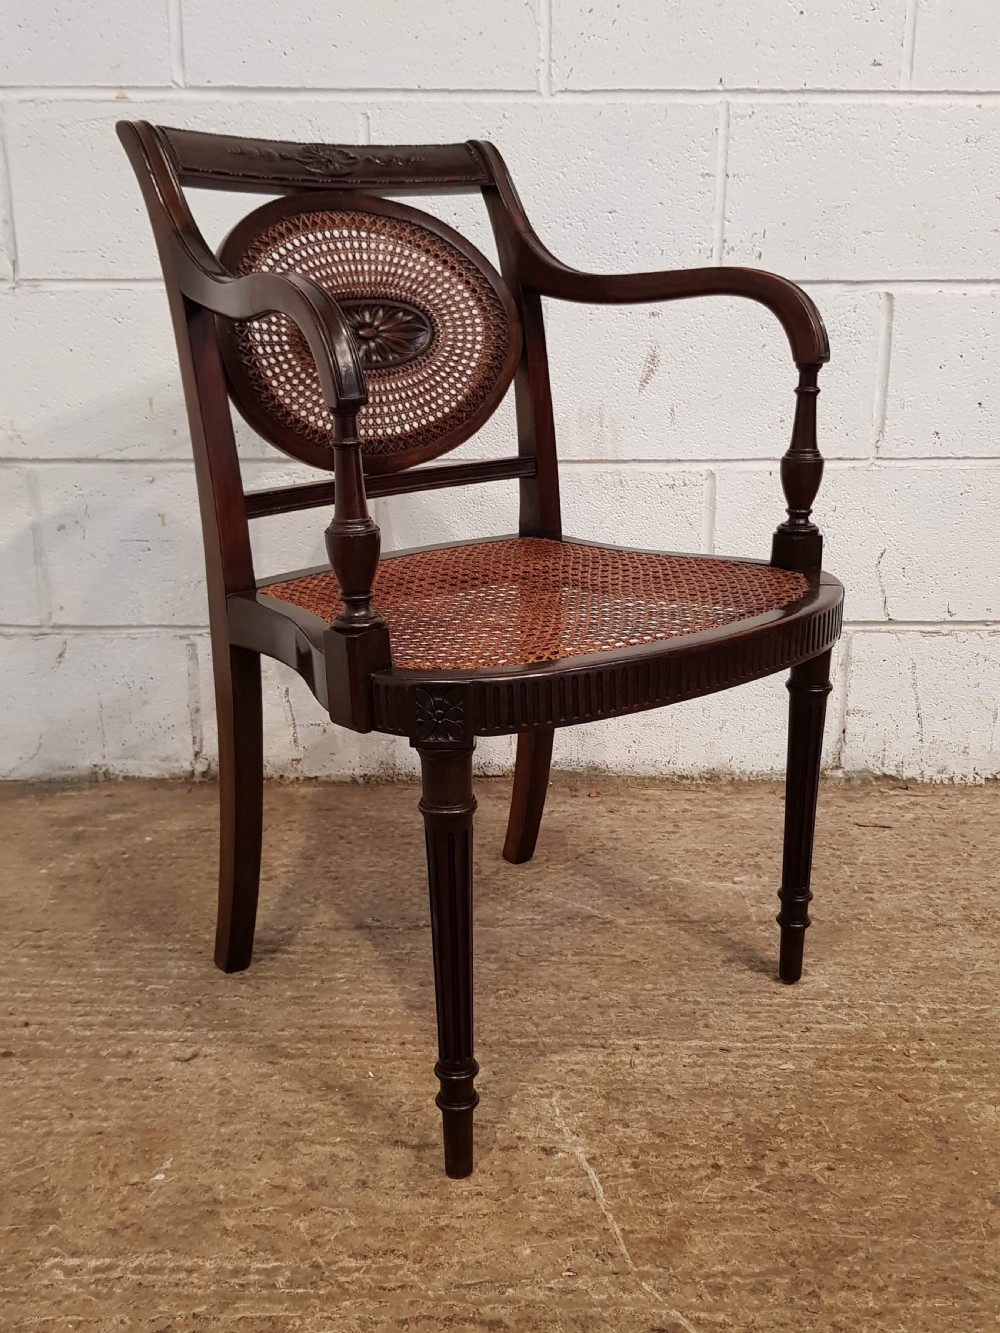 antique edwardian regency mahogany berger library chair c1900